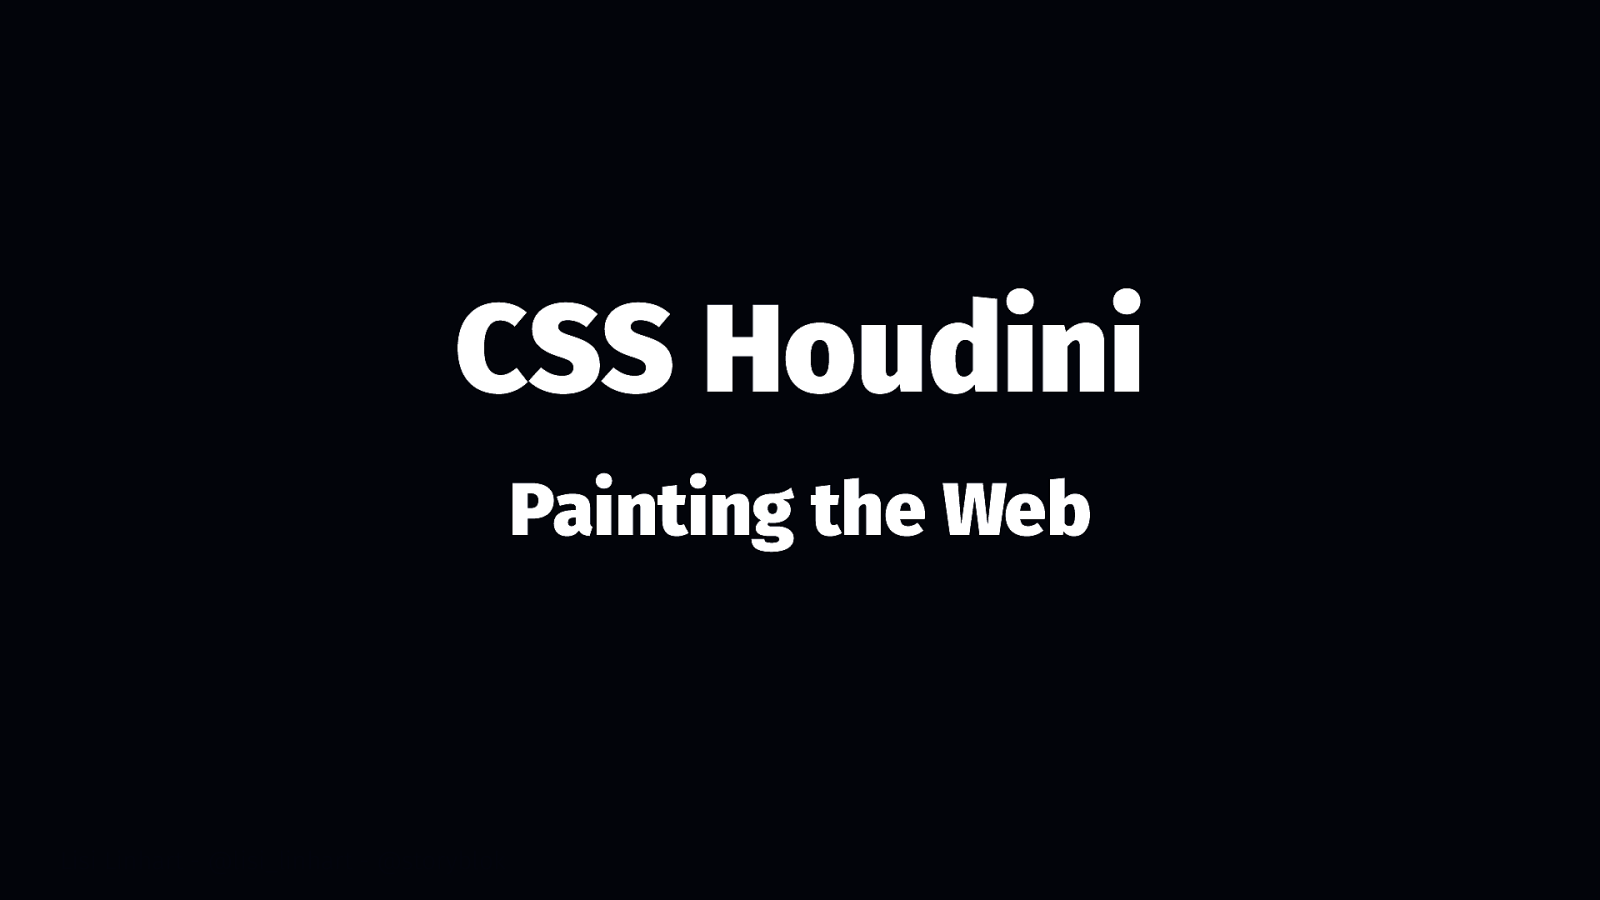 CSS Houdini - Painting the web